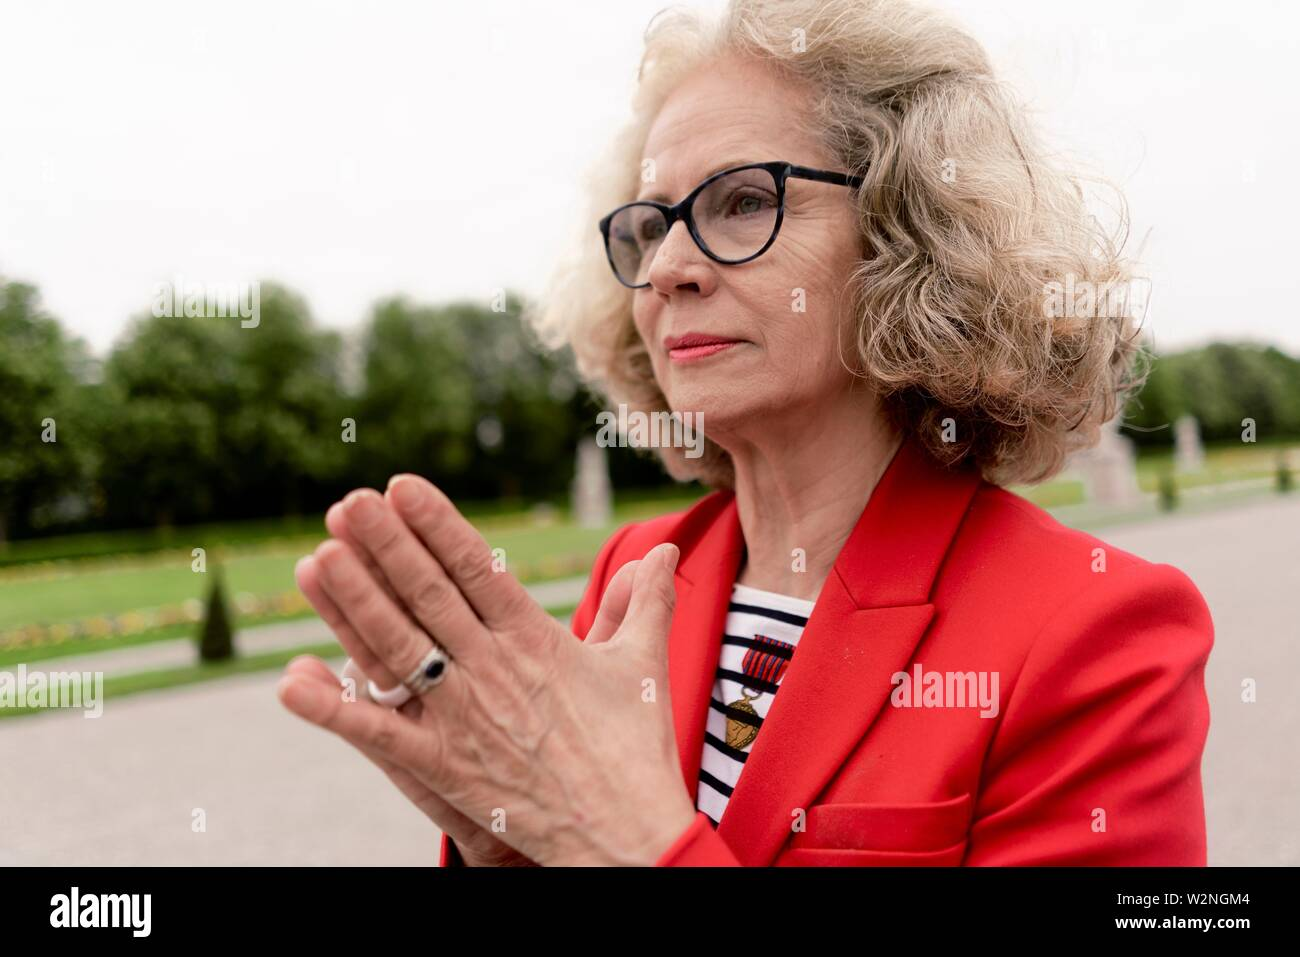 senior woman (67 years old) with folded hands in park, in Nymphenburg, Munich, Germany. - Stock Image